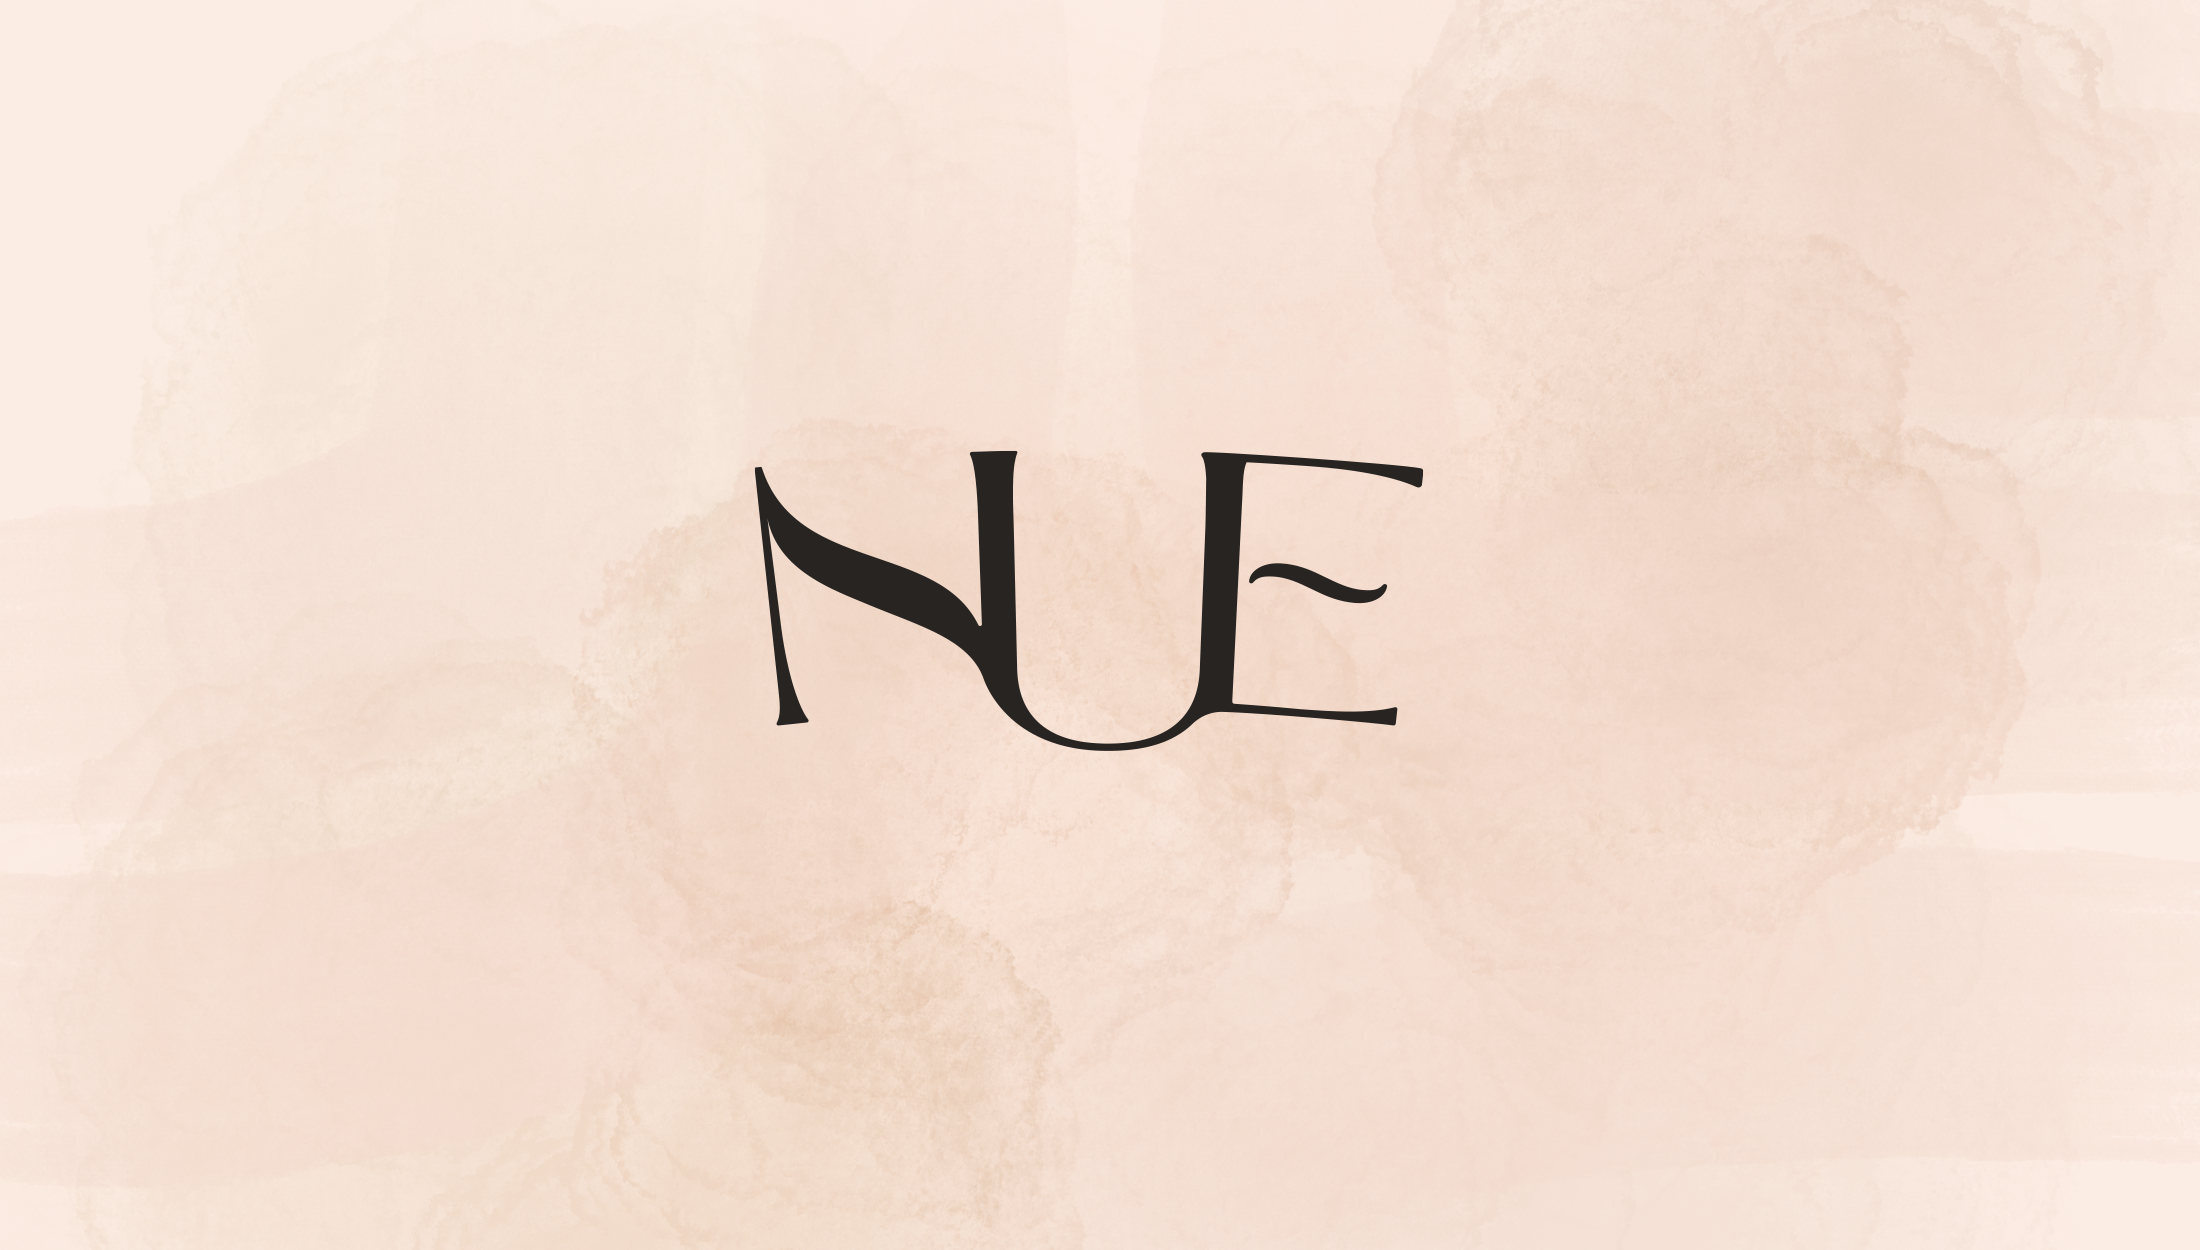 Logo design for Nue, home, beauty & lifestyle brand specialsing in nude shades for their products - designed by Wiltshire-based graphic designer, Kaye Huett